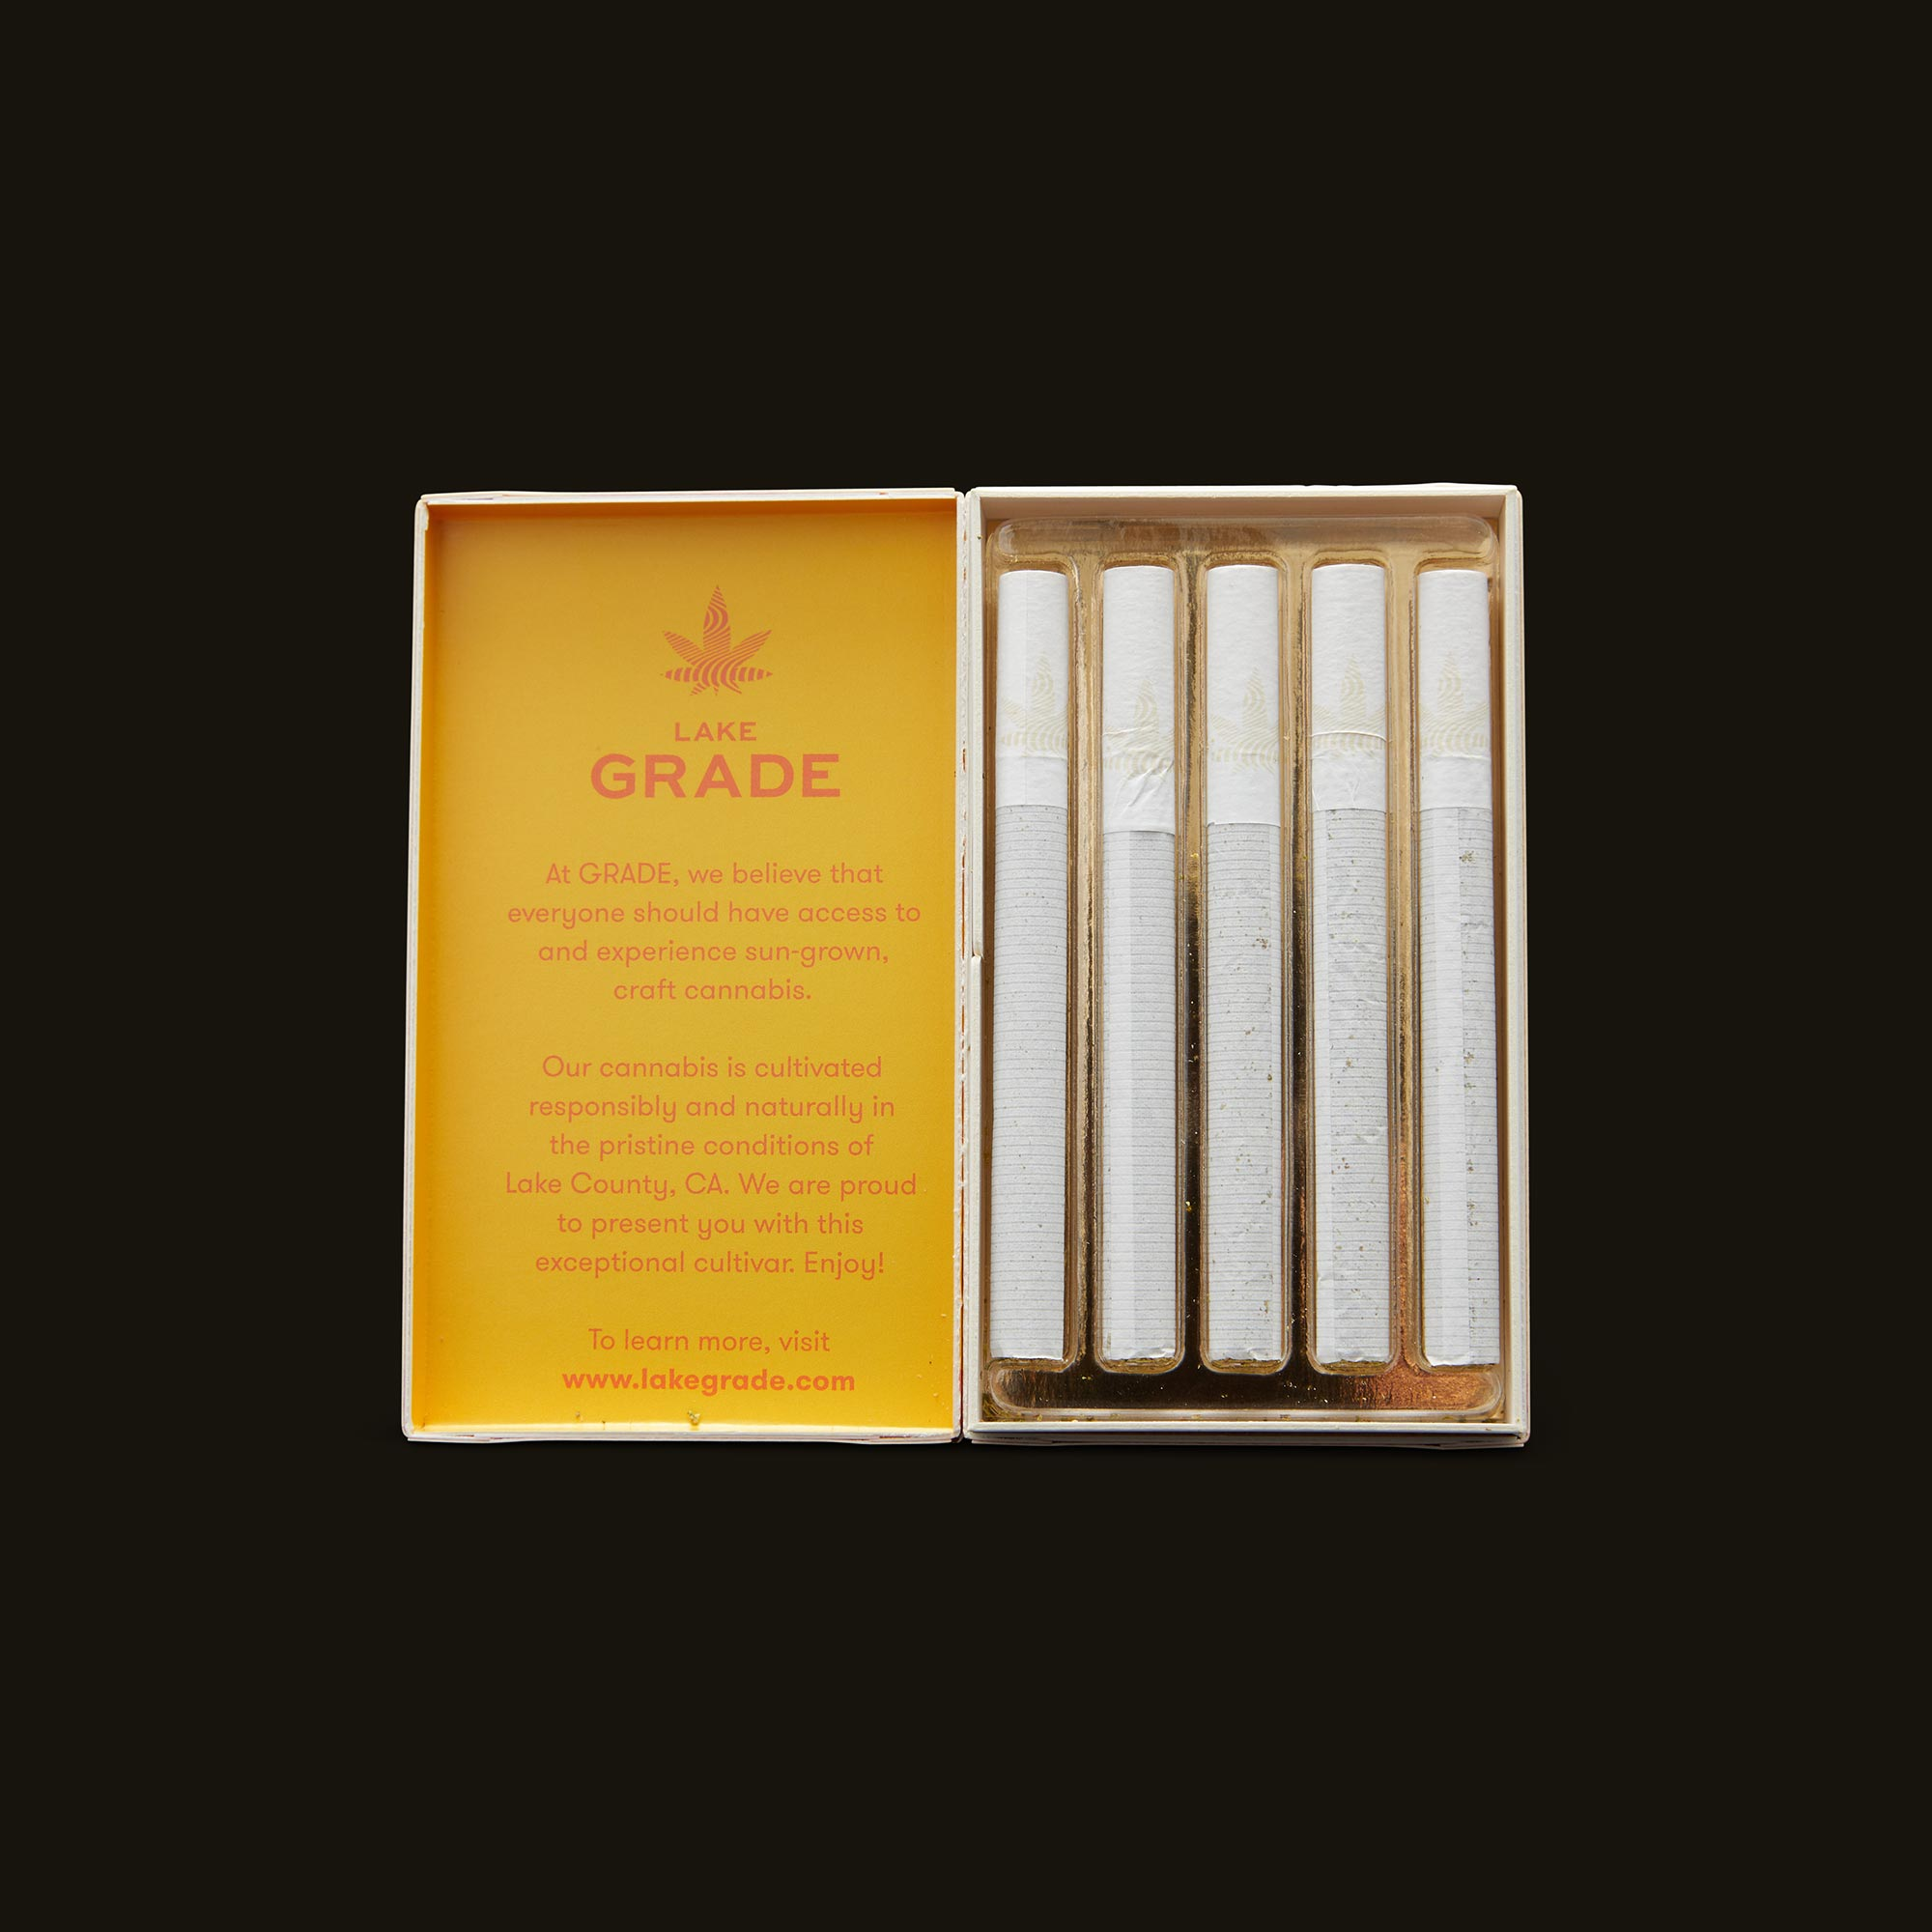 Lakegrade Lemon Sour Diesel Pre-Roll 5-Pack Open